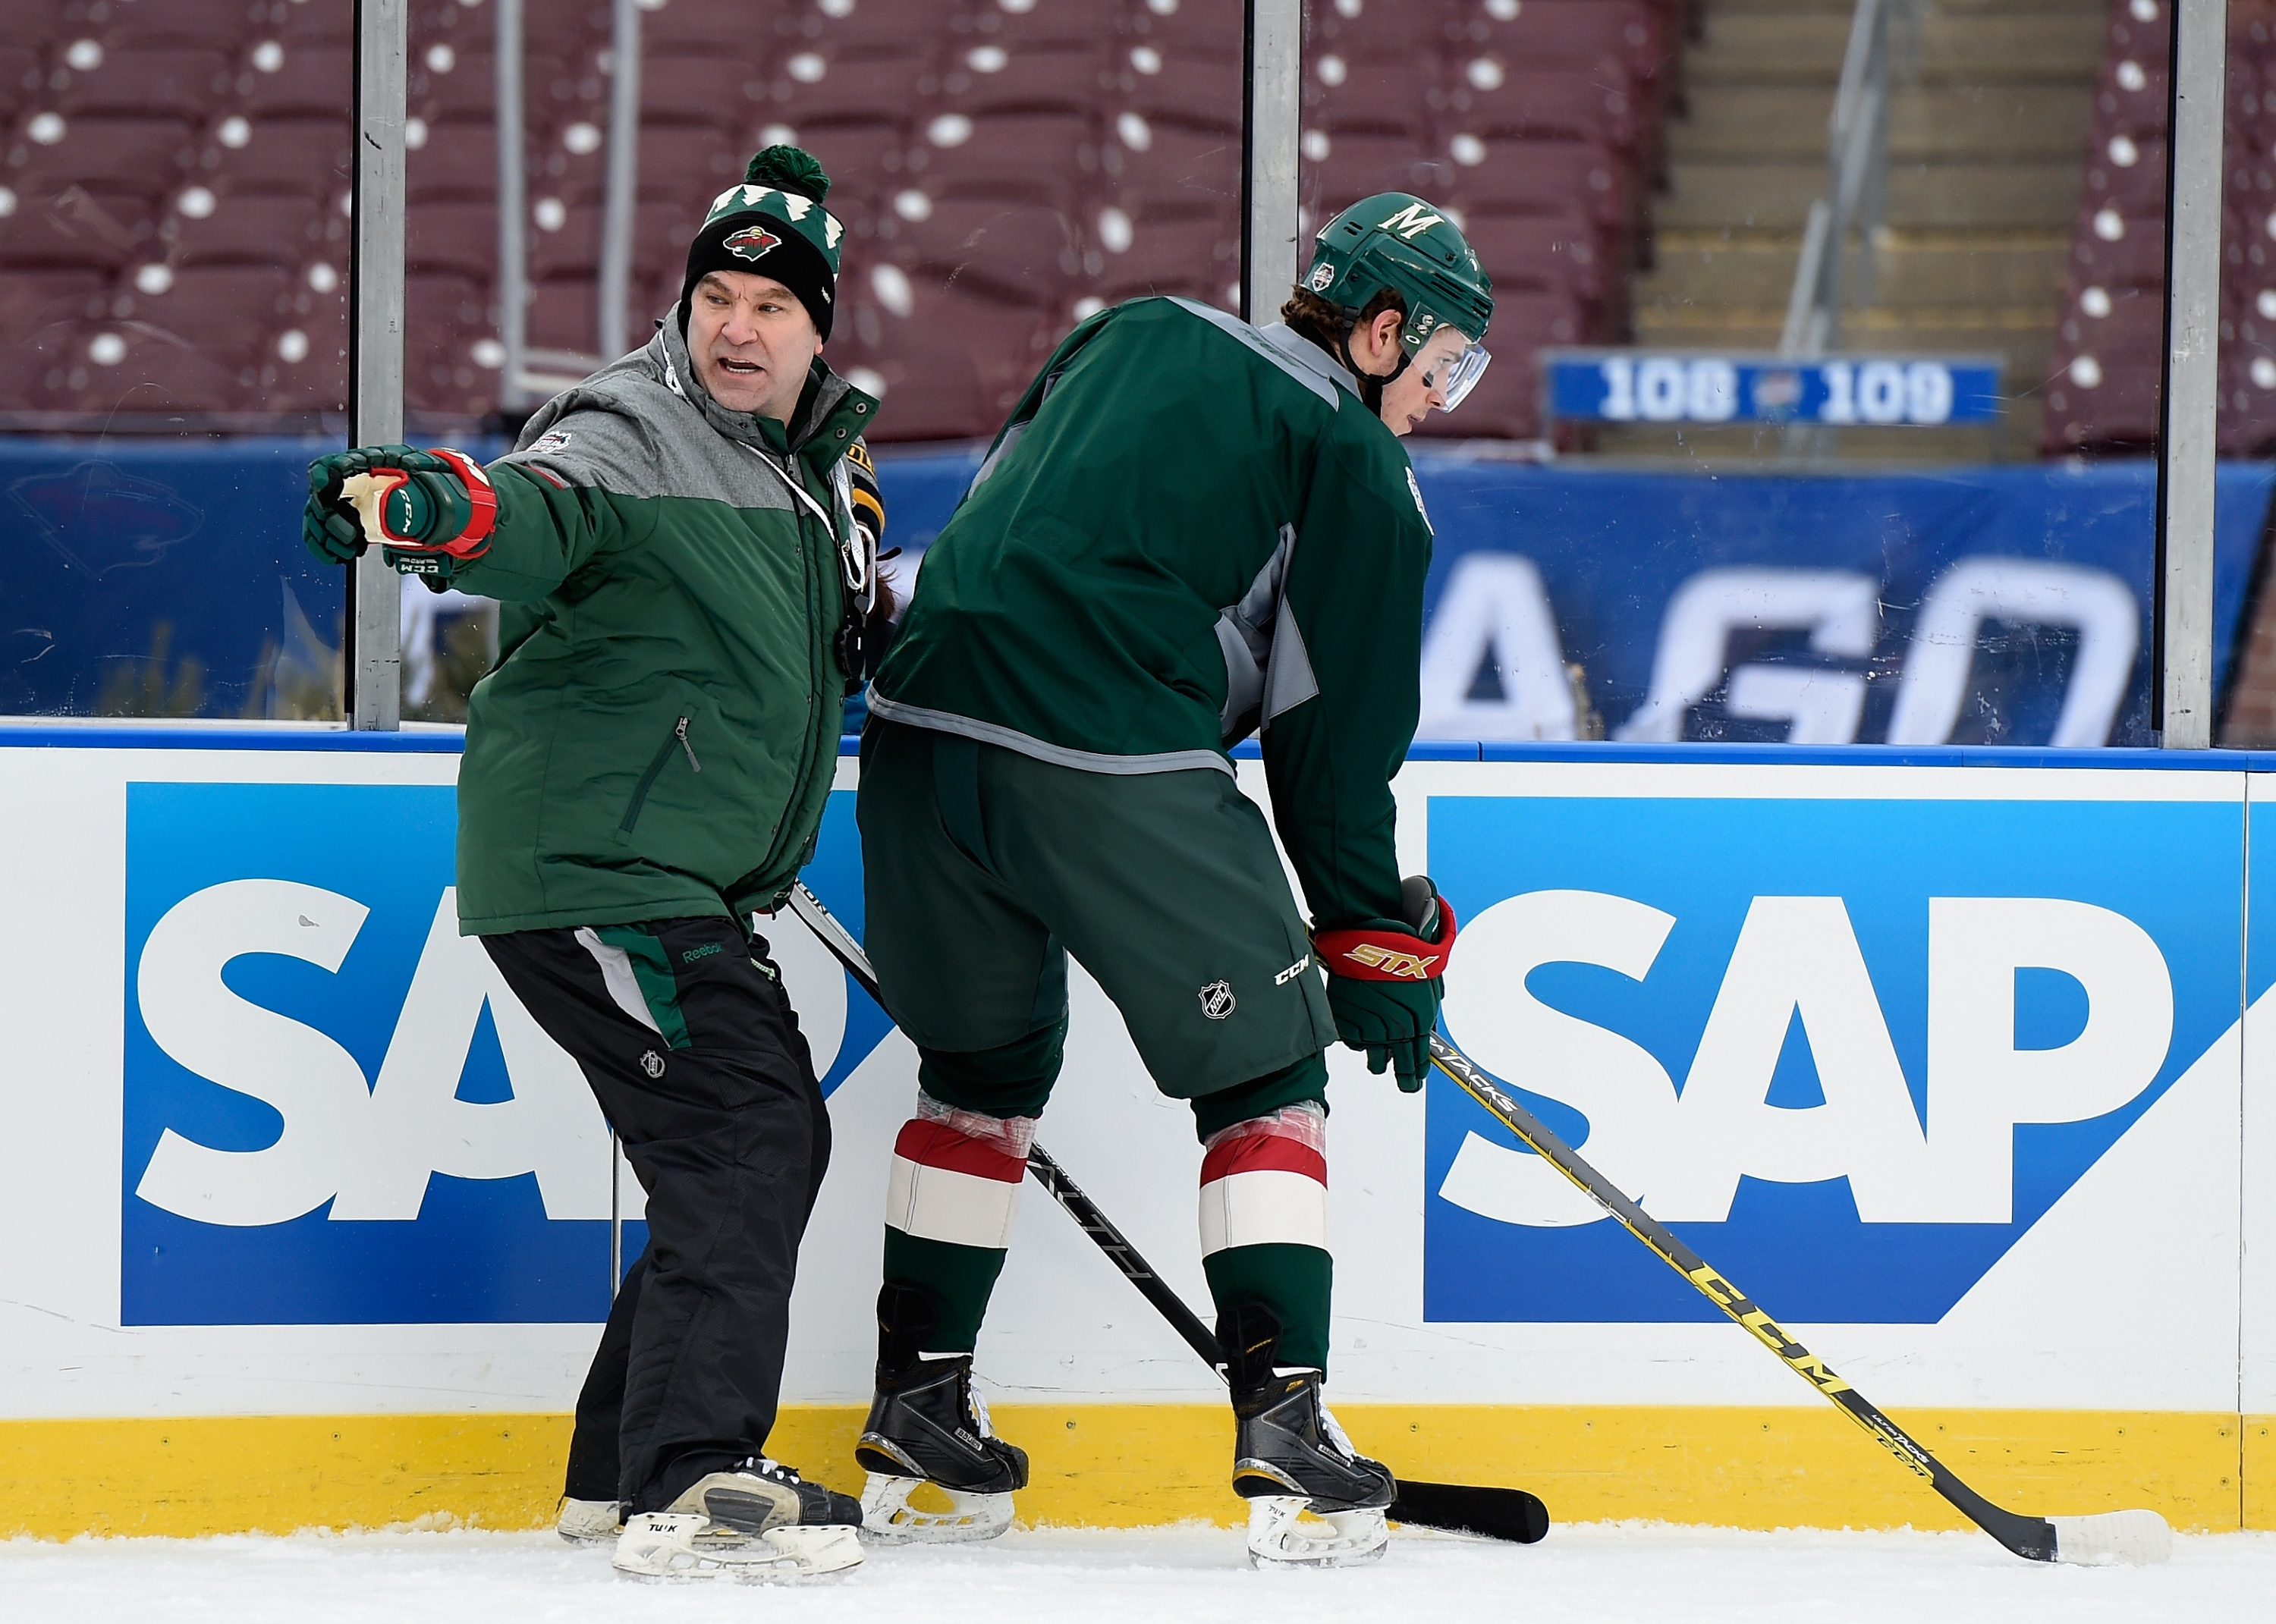 MINNEAPOLIS, MN - FEBRUARY 20: Interim head coach John Torchetti of the Minnesota Wild speaks to Charlie Coyle #3 during practice day at the 2016 Coors Light Stadium Series on February 20, 2016 at TCF Bank Stadium in Minneapolis, Minnesota. (Photo by Hannah Foslien/Getty Images)